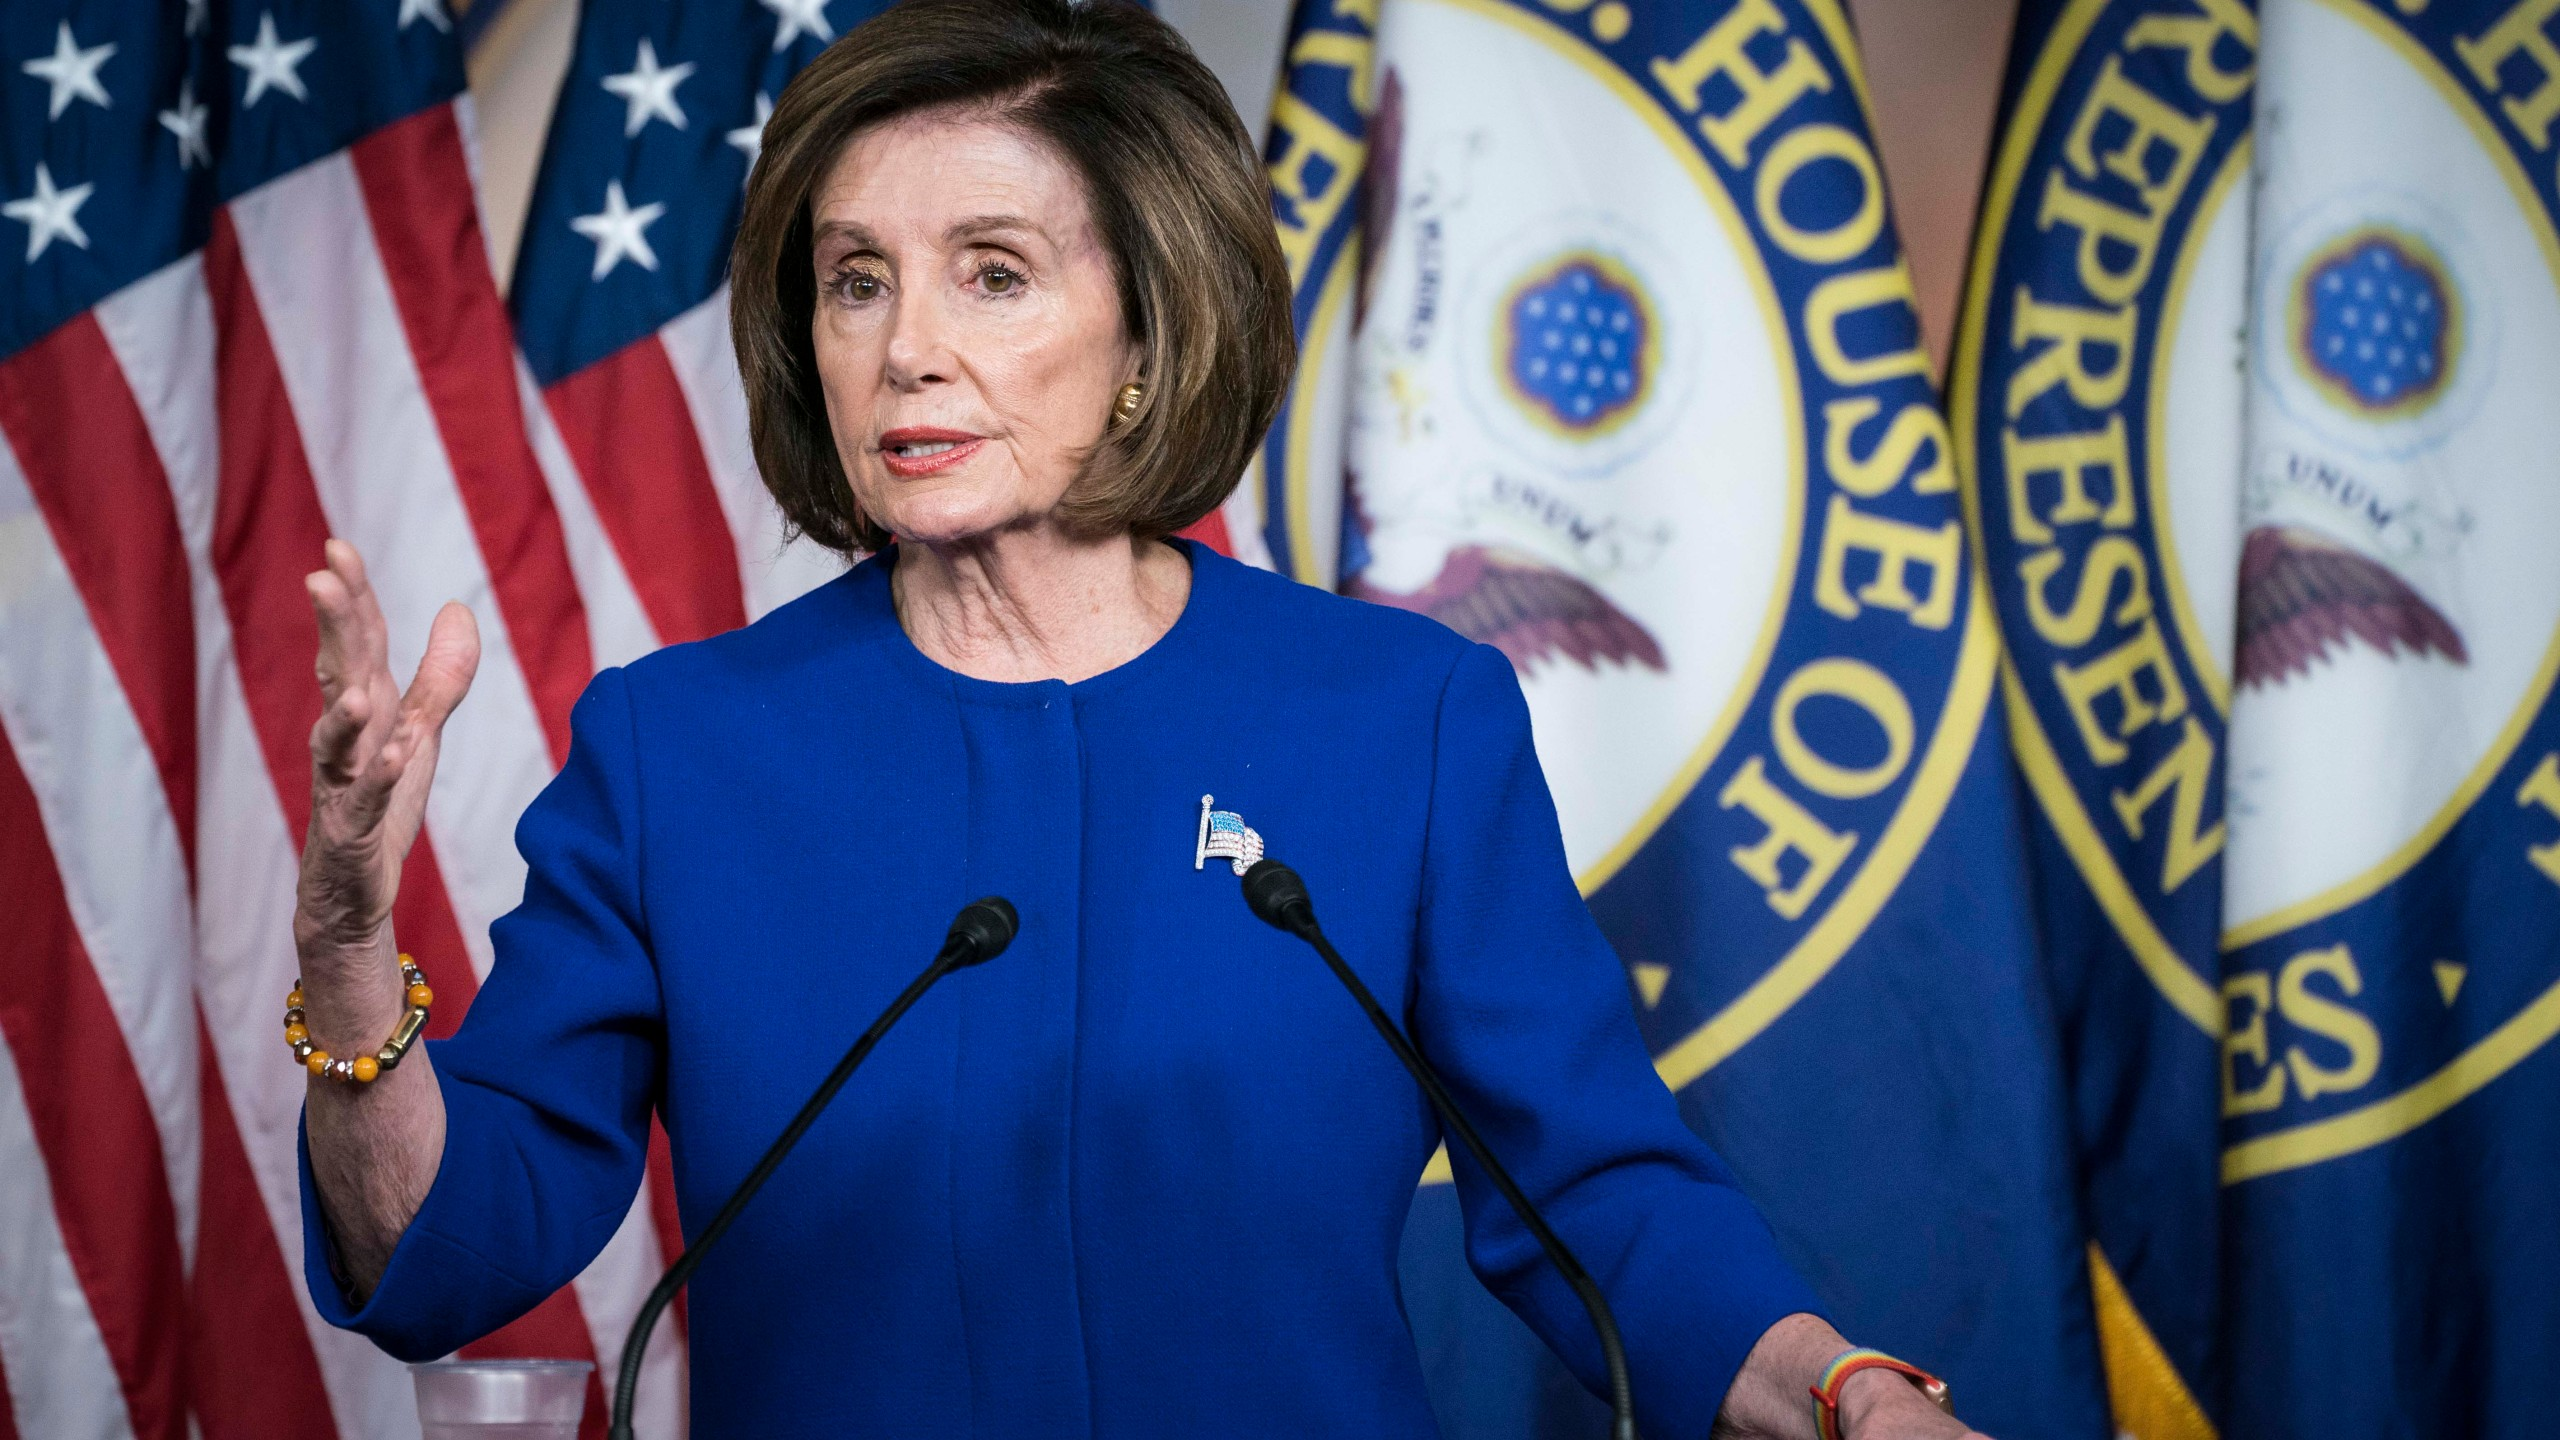 U.S. Speaker of the House Rep. Nancy Pelosi (D-CA) speaks during her weekly news conference Feb. 13, 2020, on Capitol Hill in Washington, D.C. (Sarah Silbiger/Getty Images)